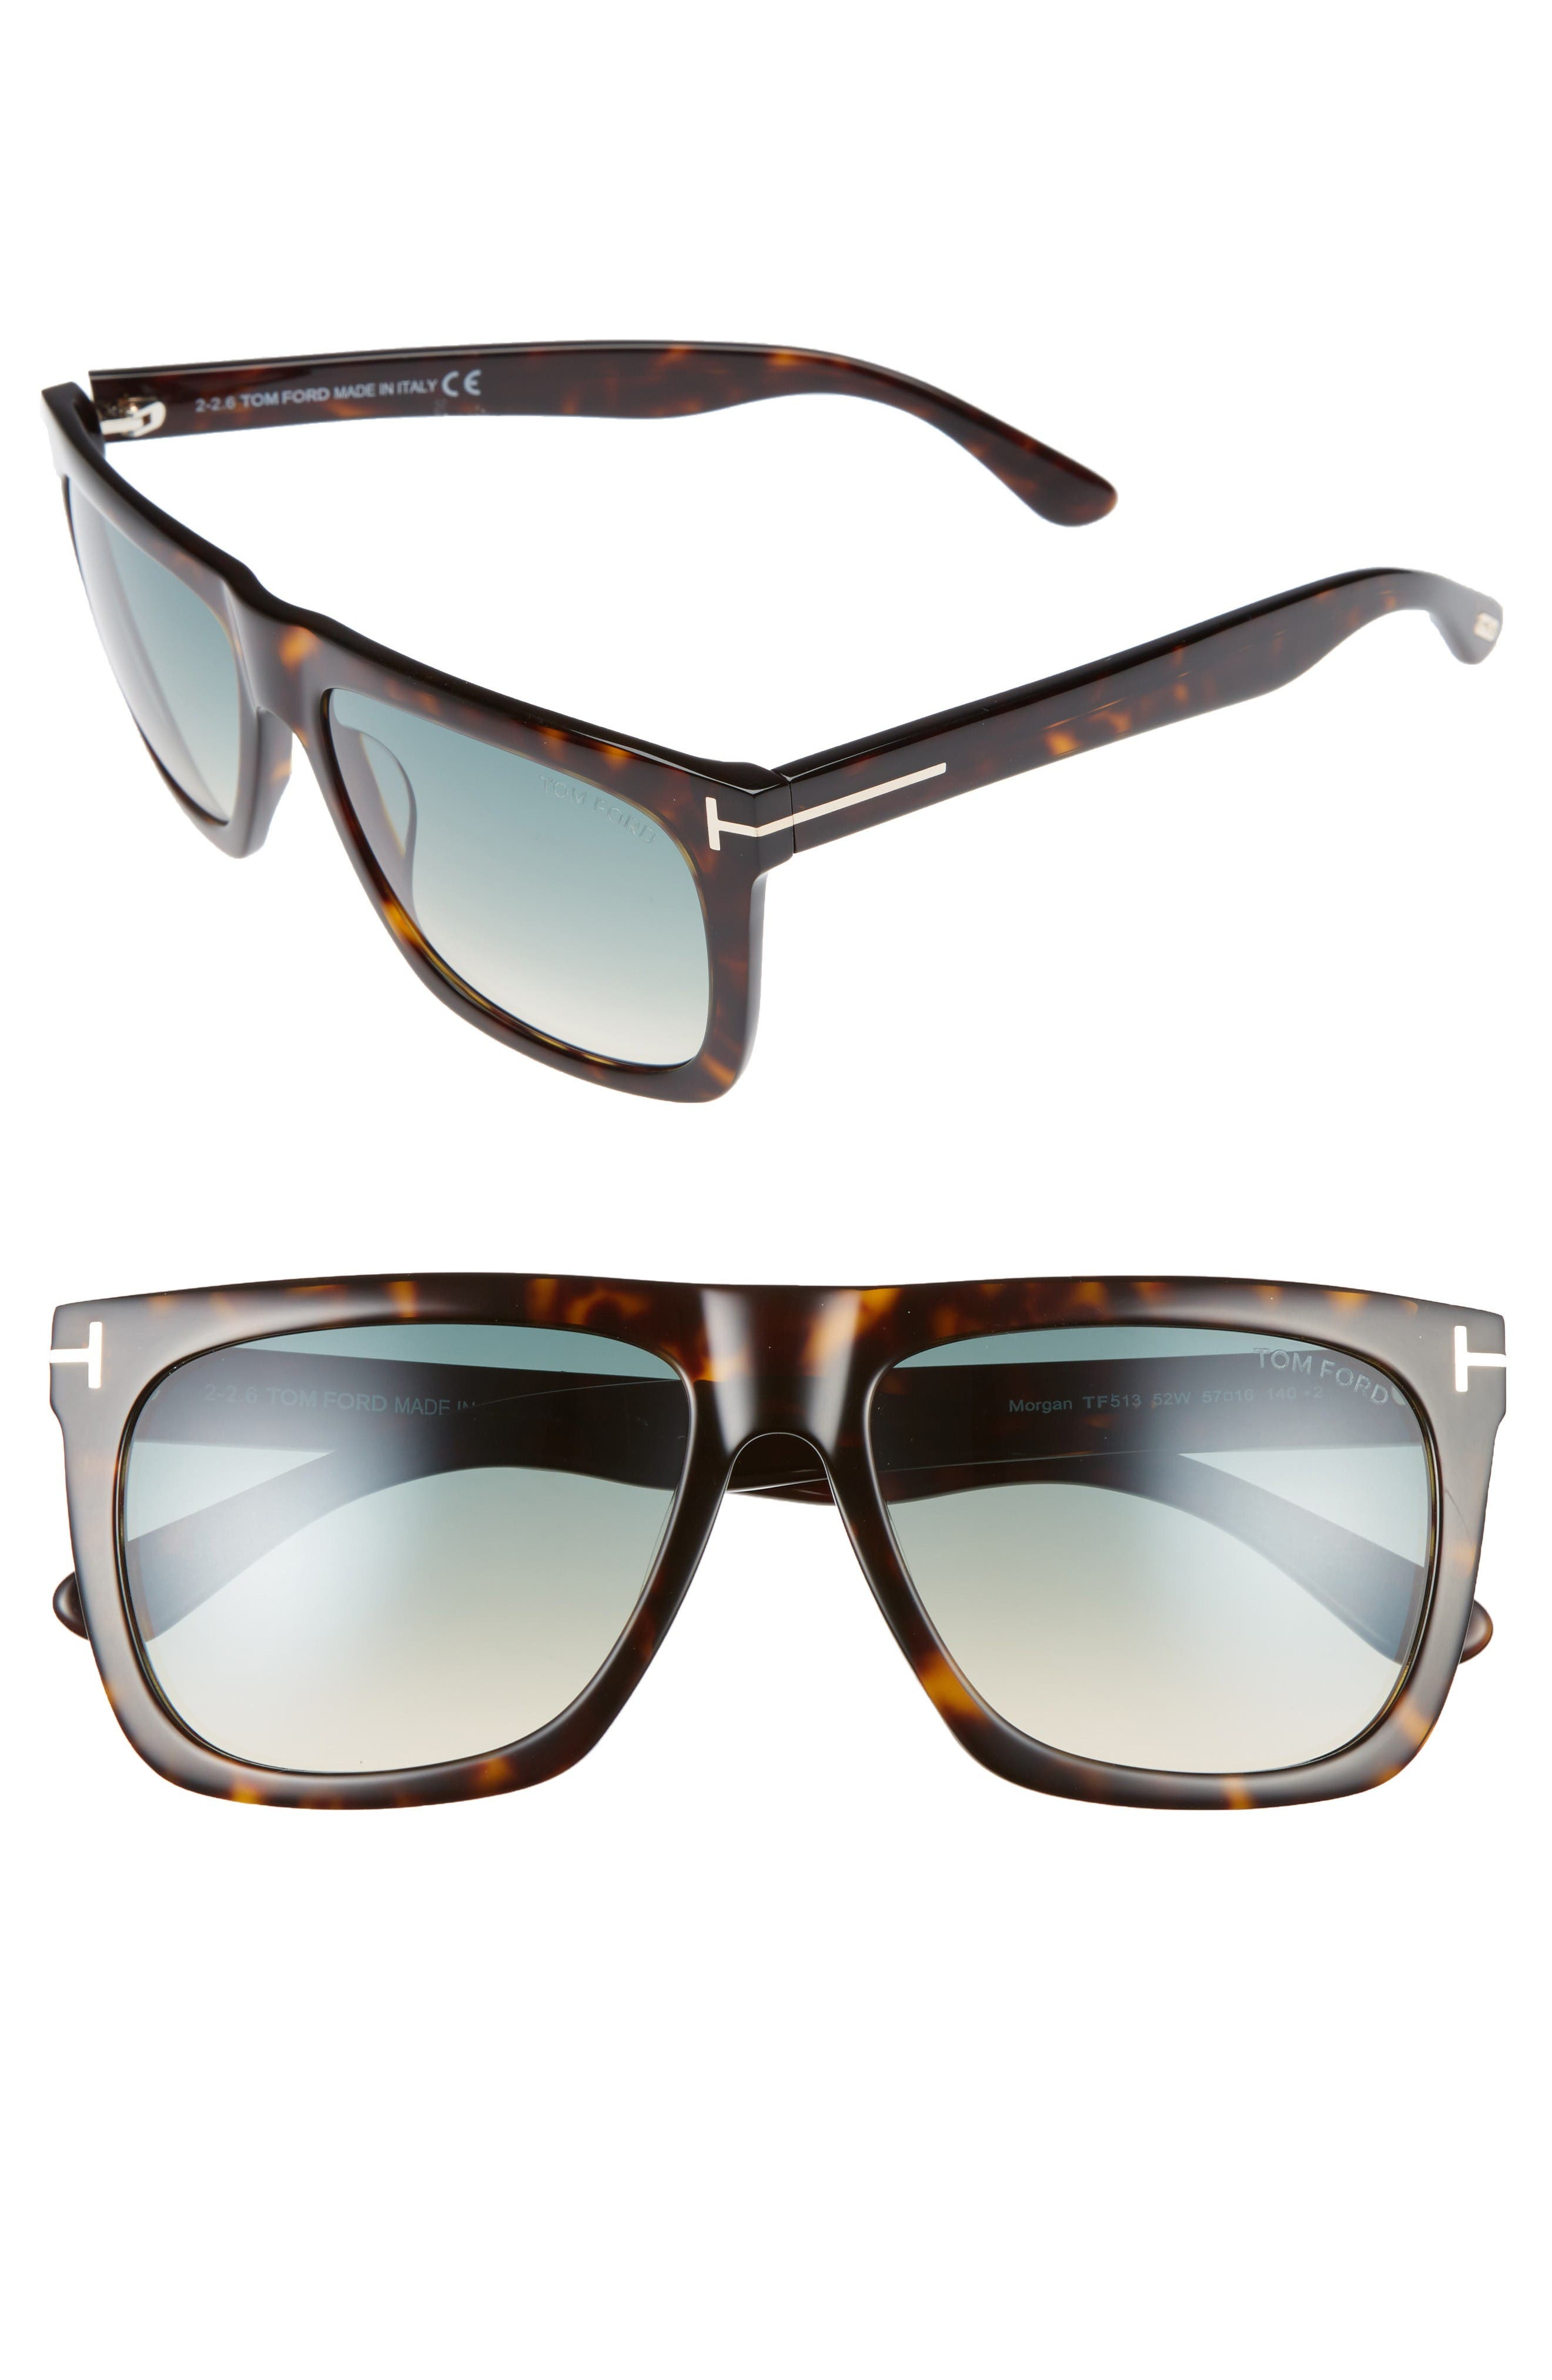 Main Image - Tom Ford Morgan 57mm Sunglasses